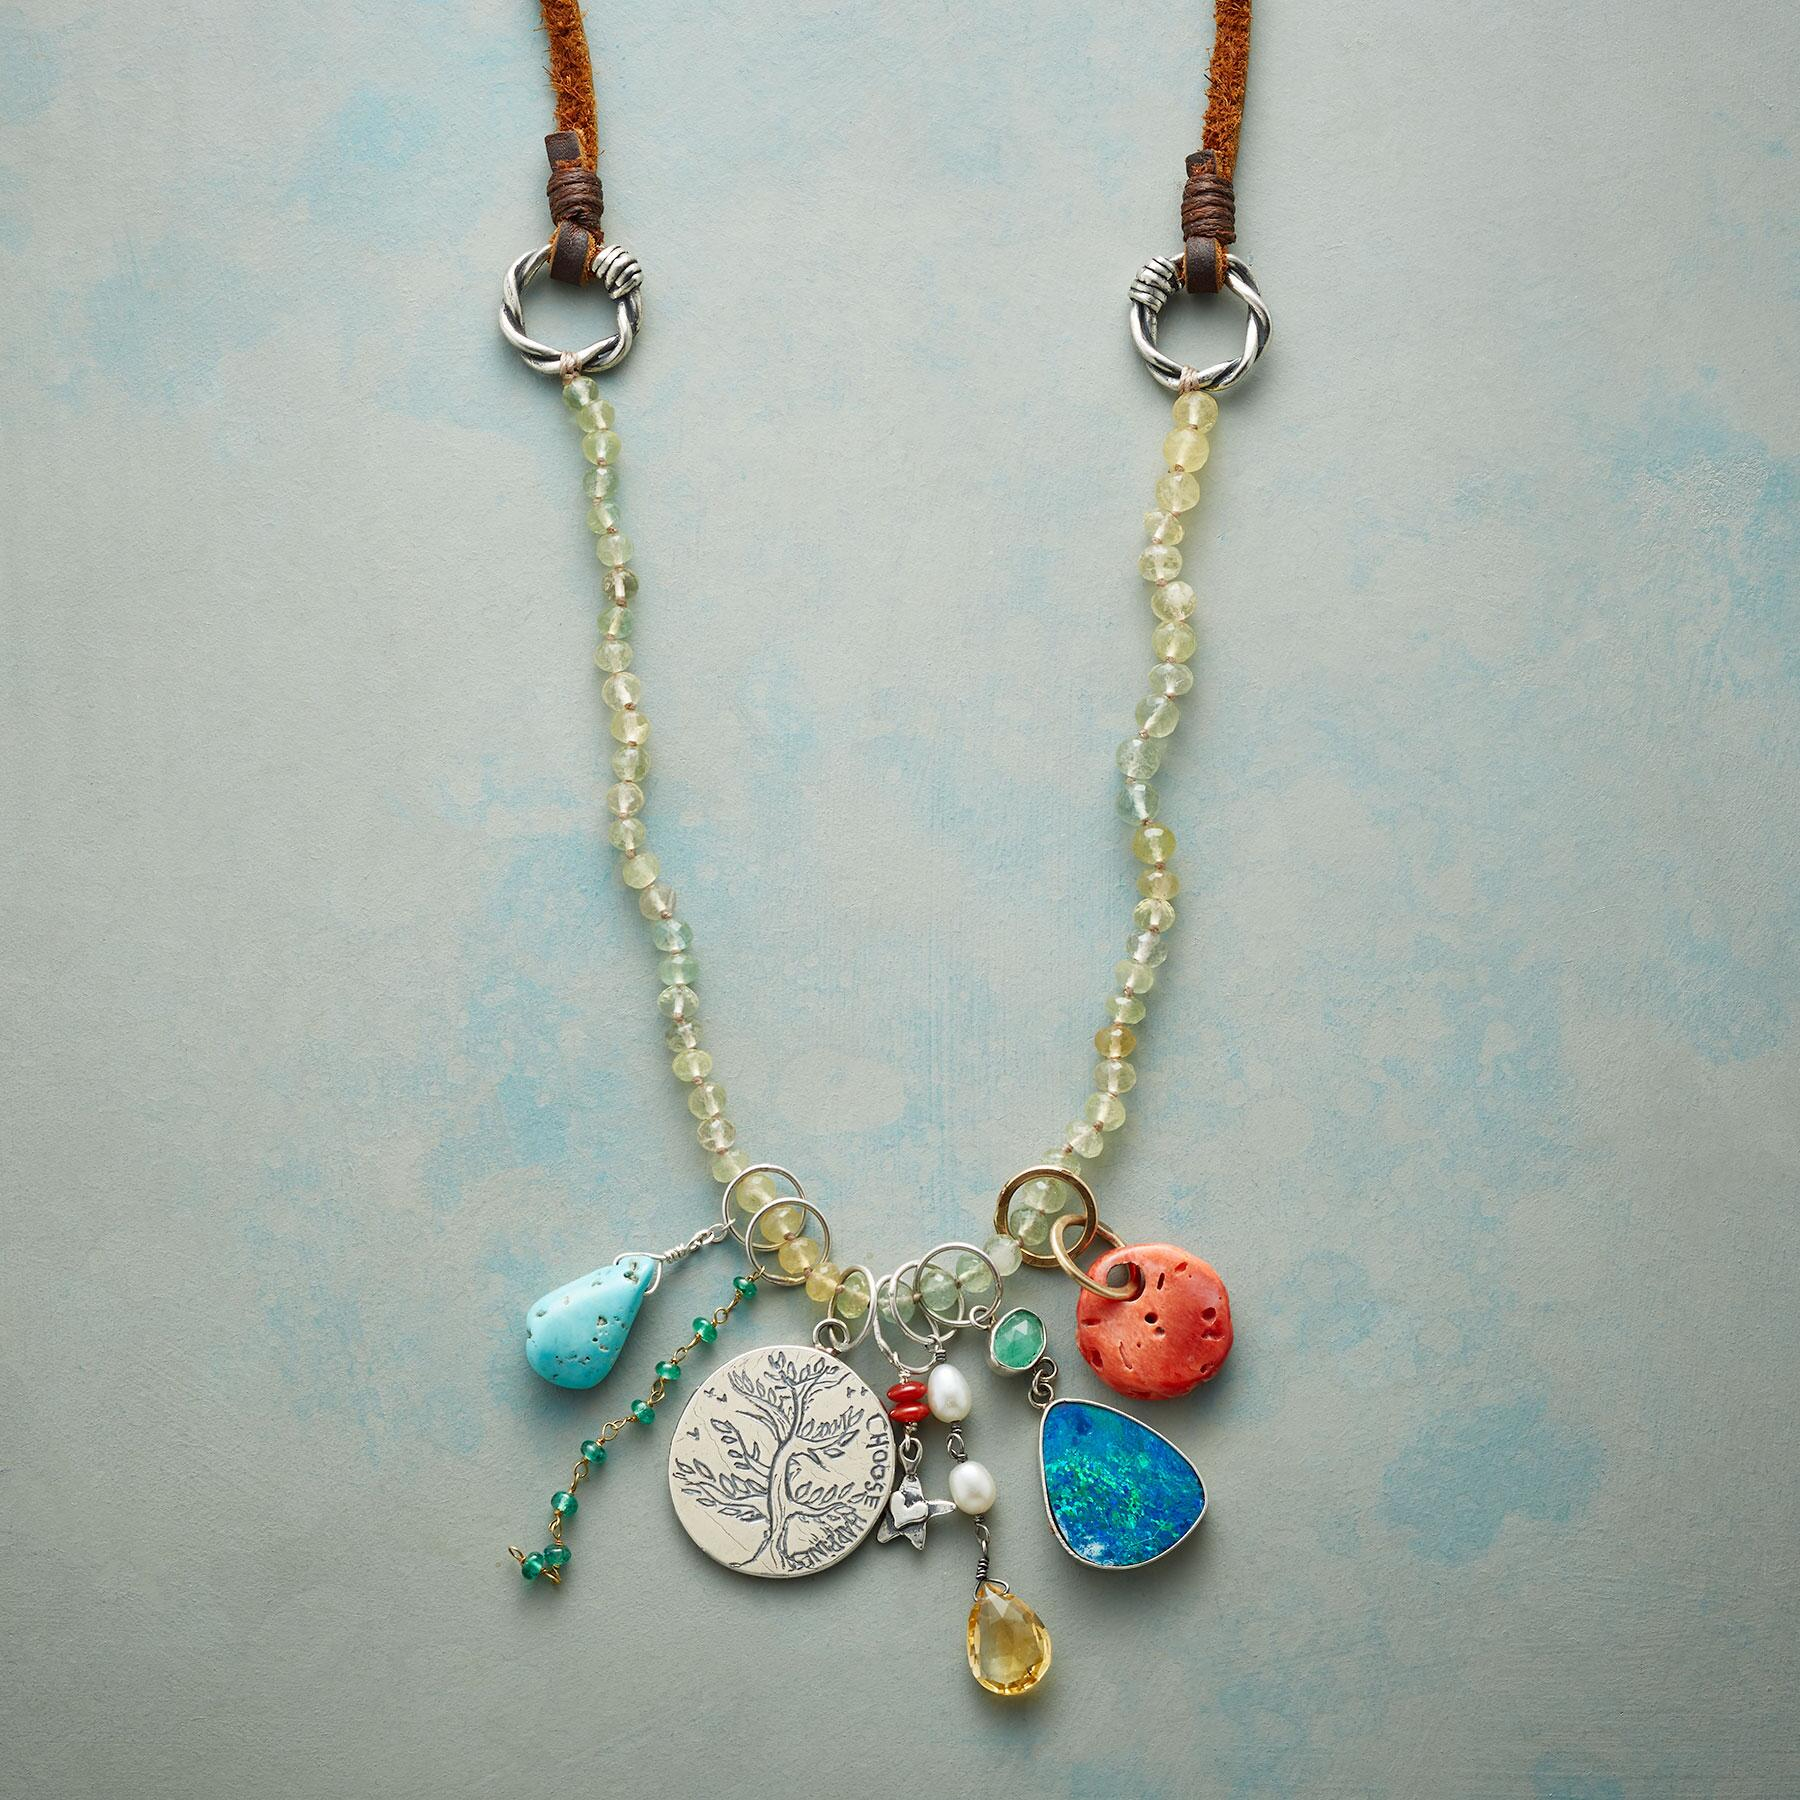 NATURES BOUNTY NECKLACE: View 1